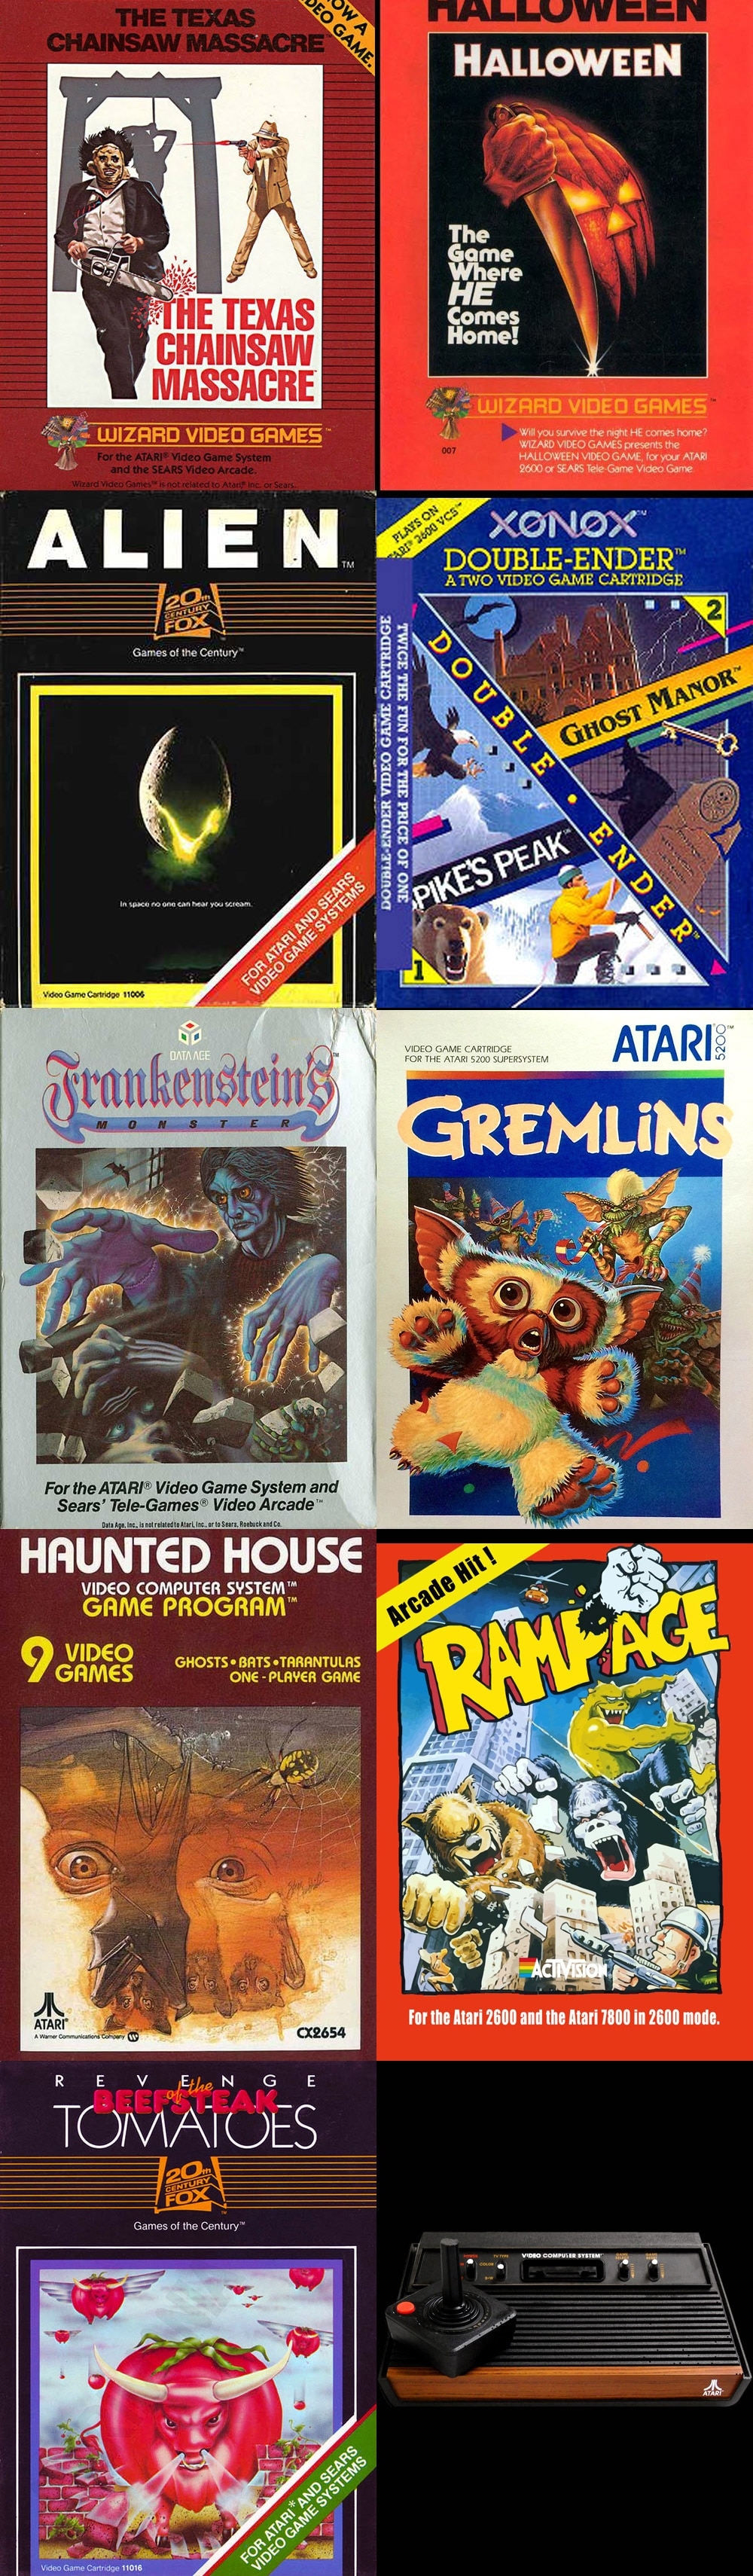 atari 2600 horror - 9 Spooky Horror Atari 2600 Games That Are Worth a Damn